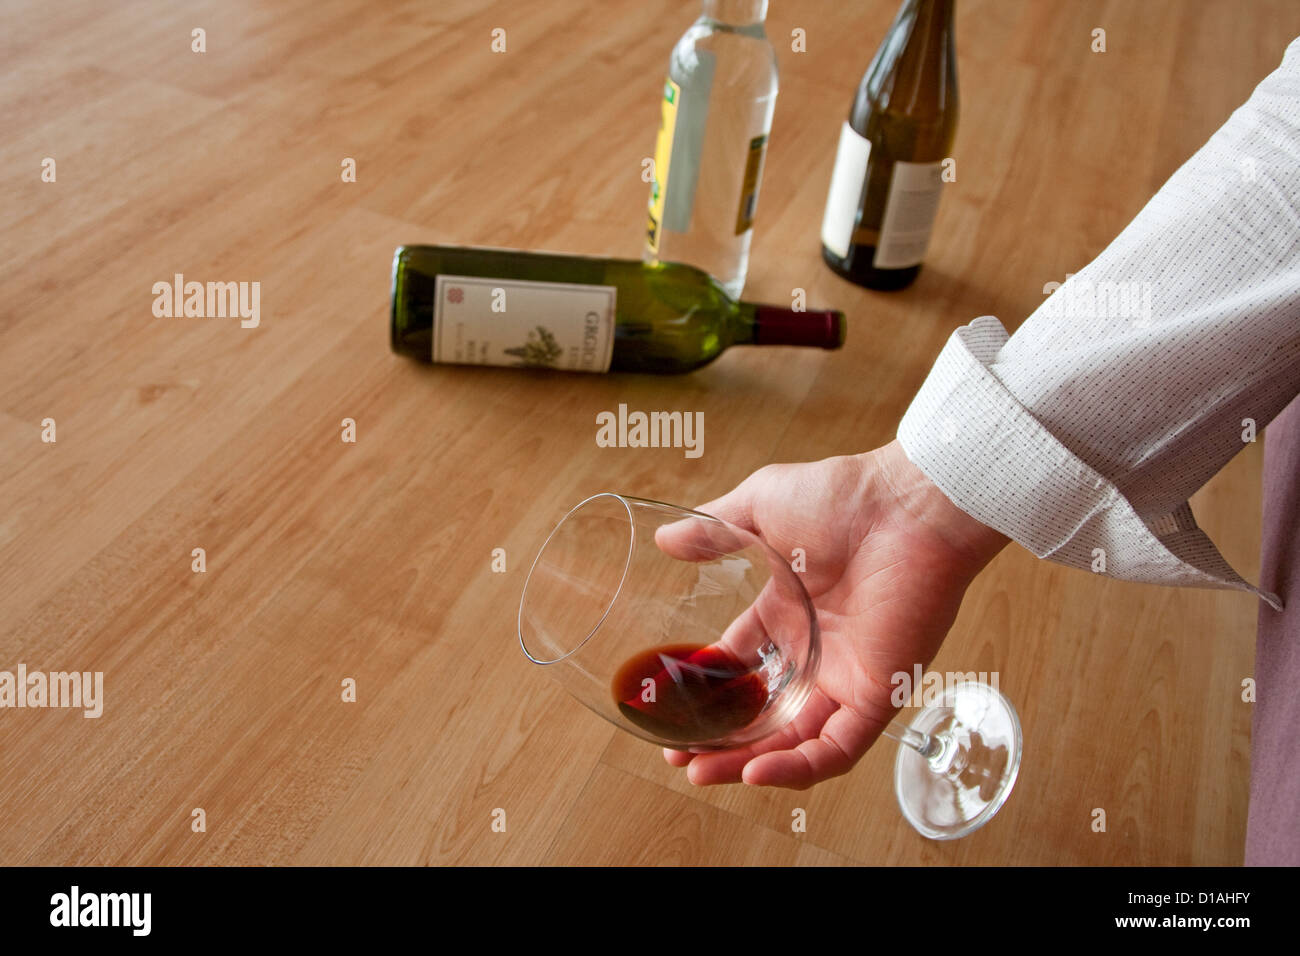 Drunken male holding a glass of red wine - Stock Image